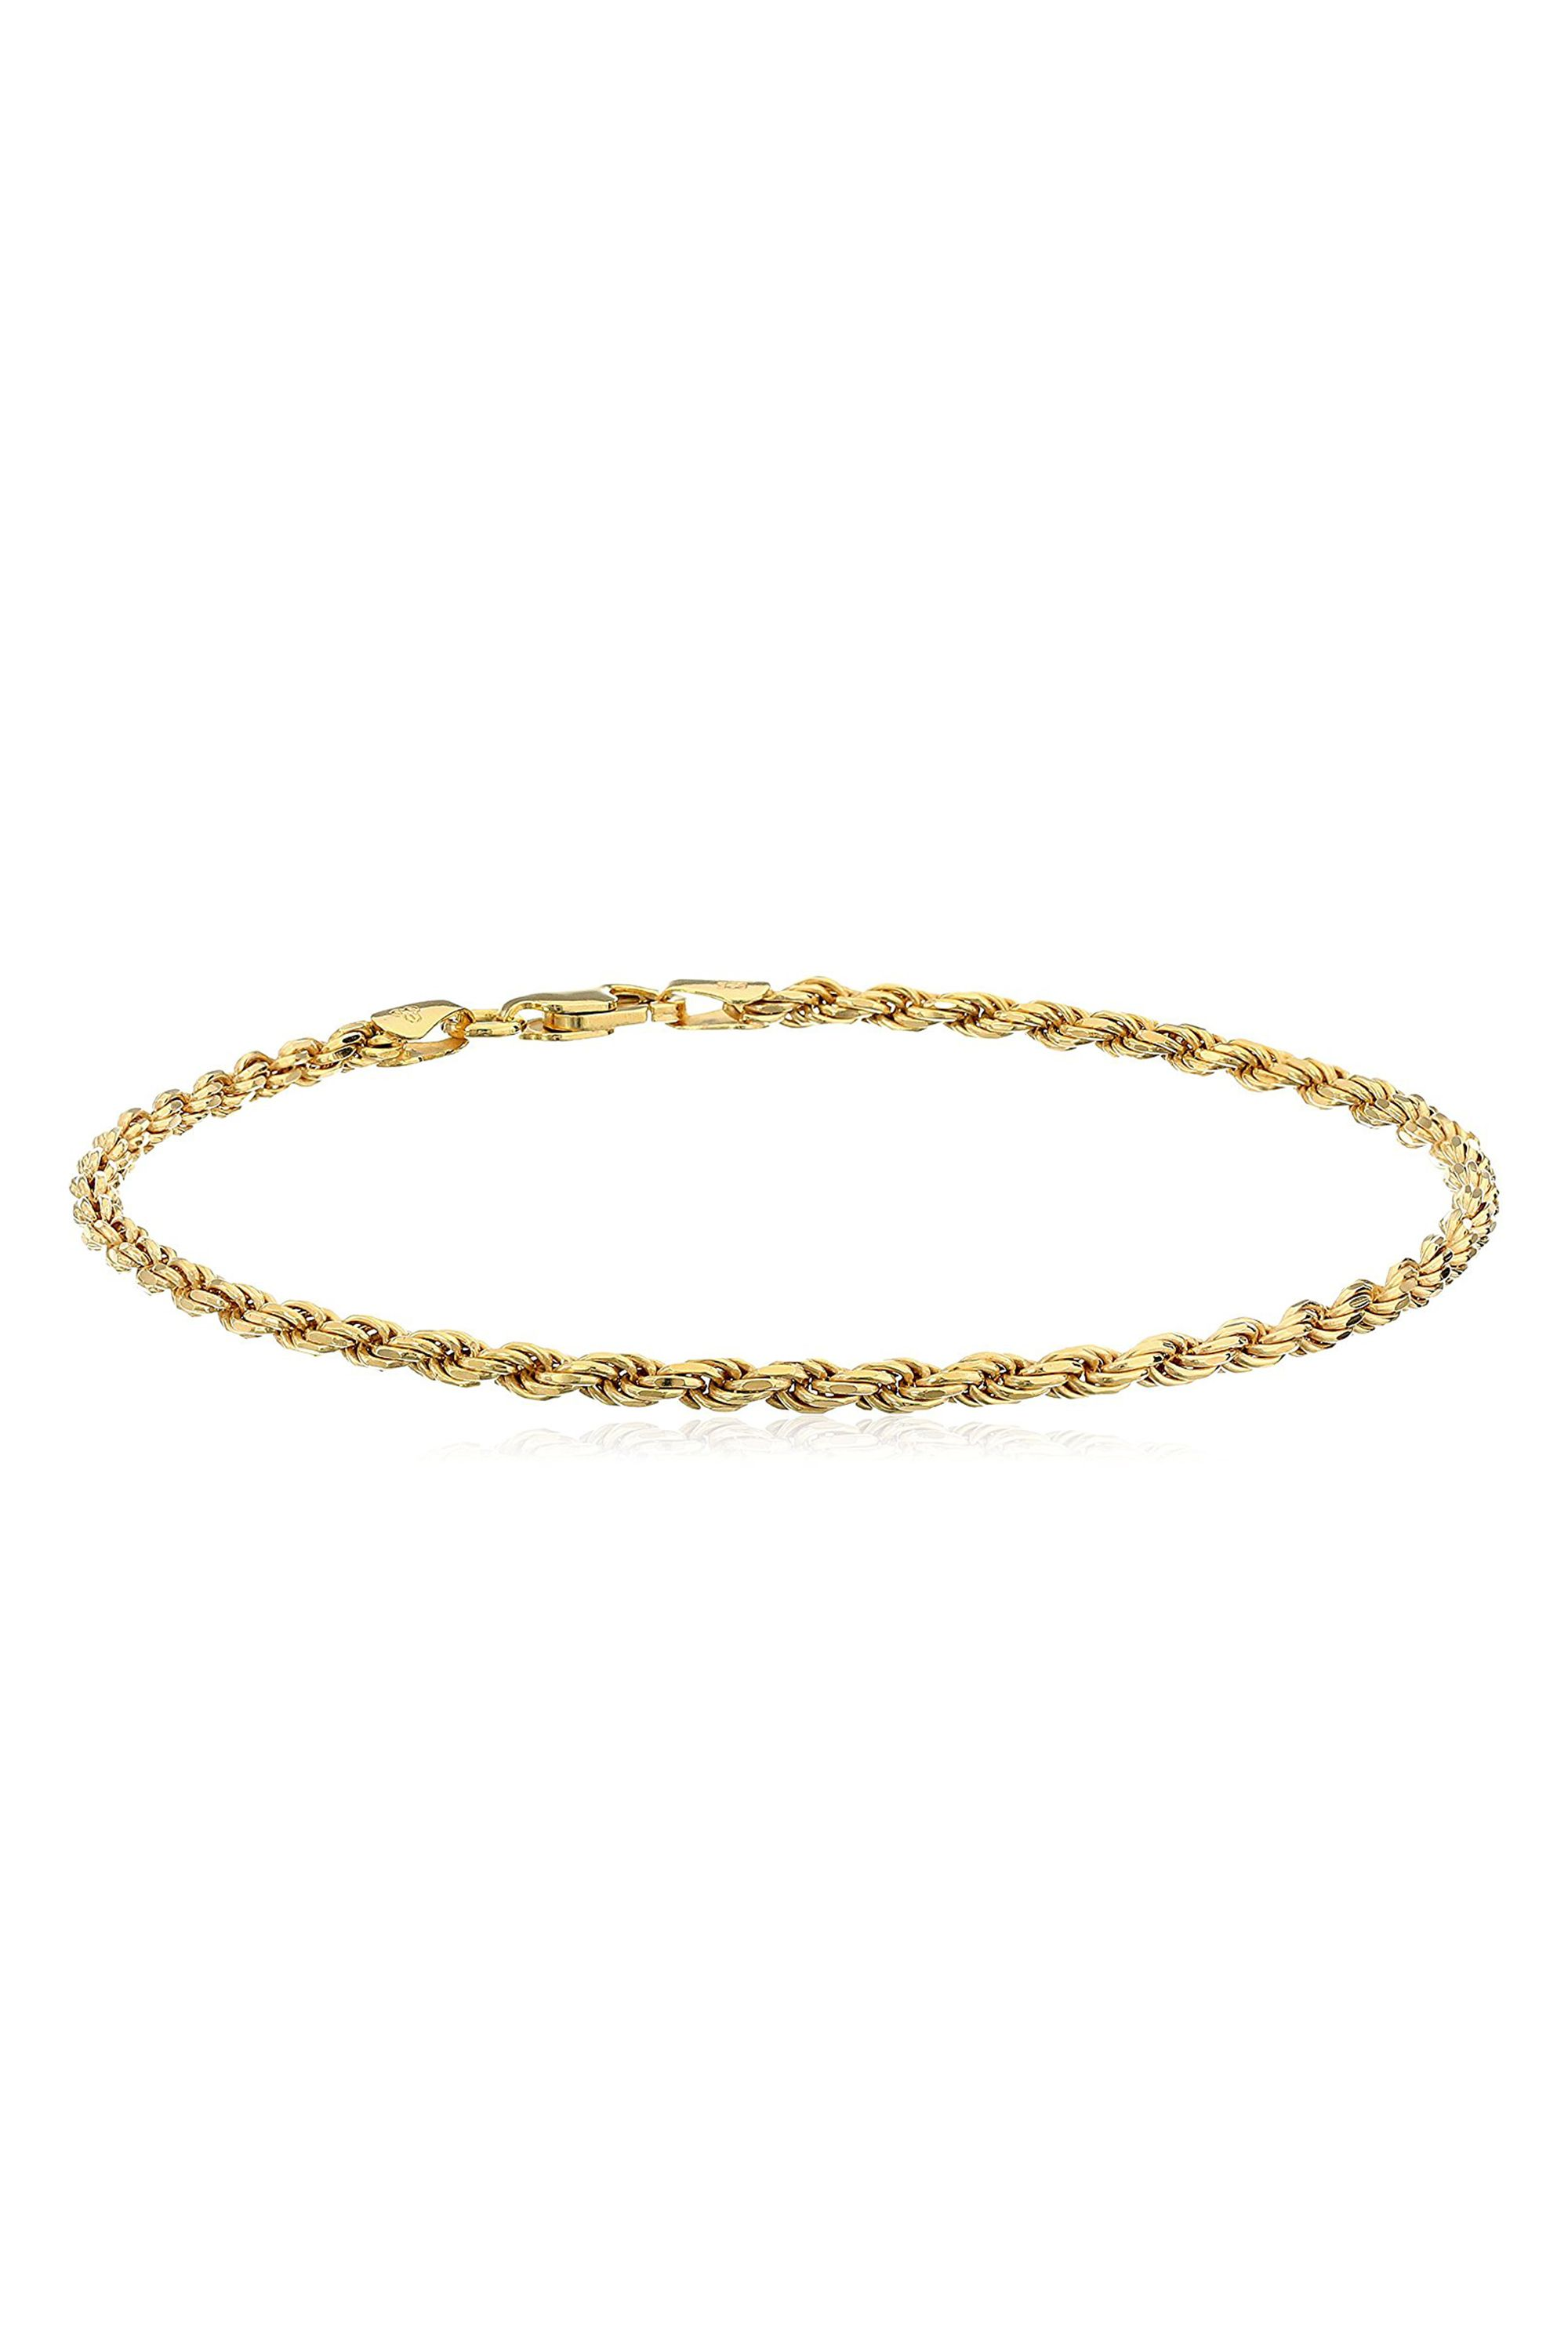 shimmer bodycandy swarovski collections created gold bracelet handmade anklet plated ankle crystals diamond with bracelets